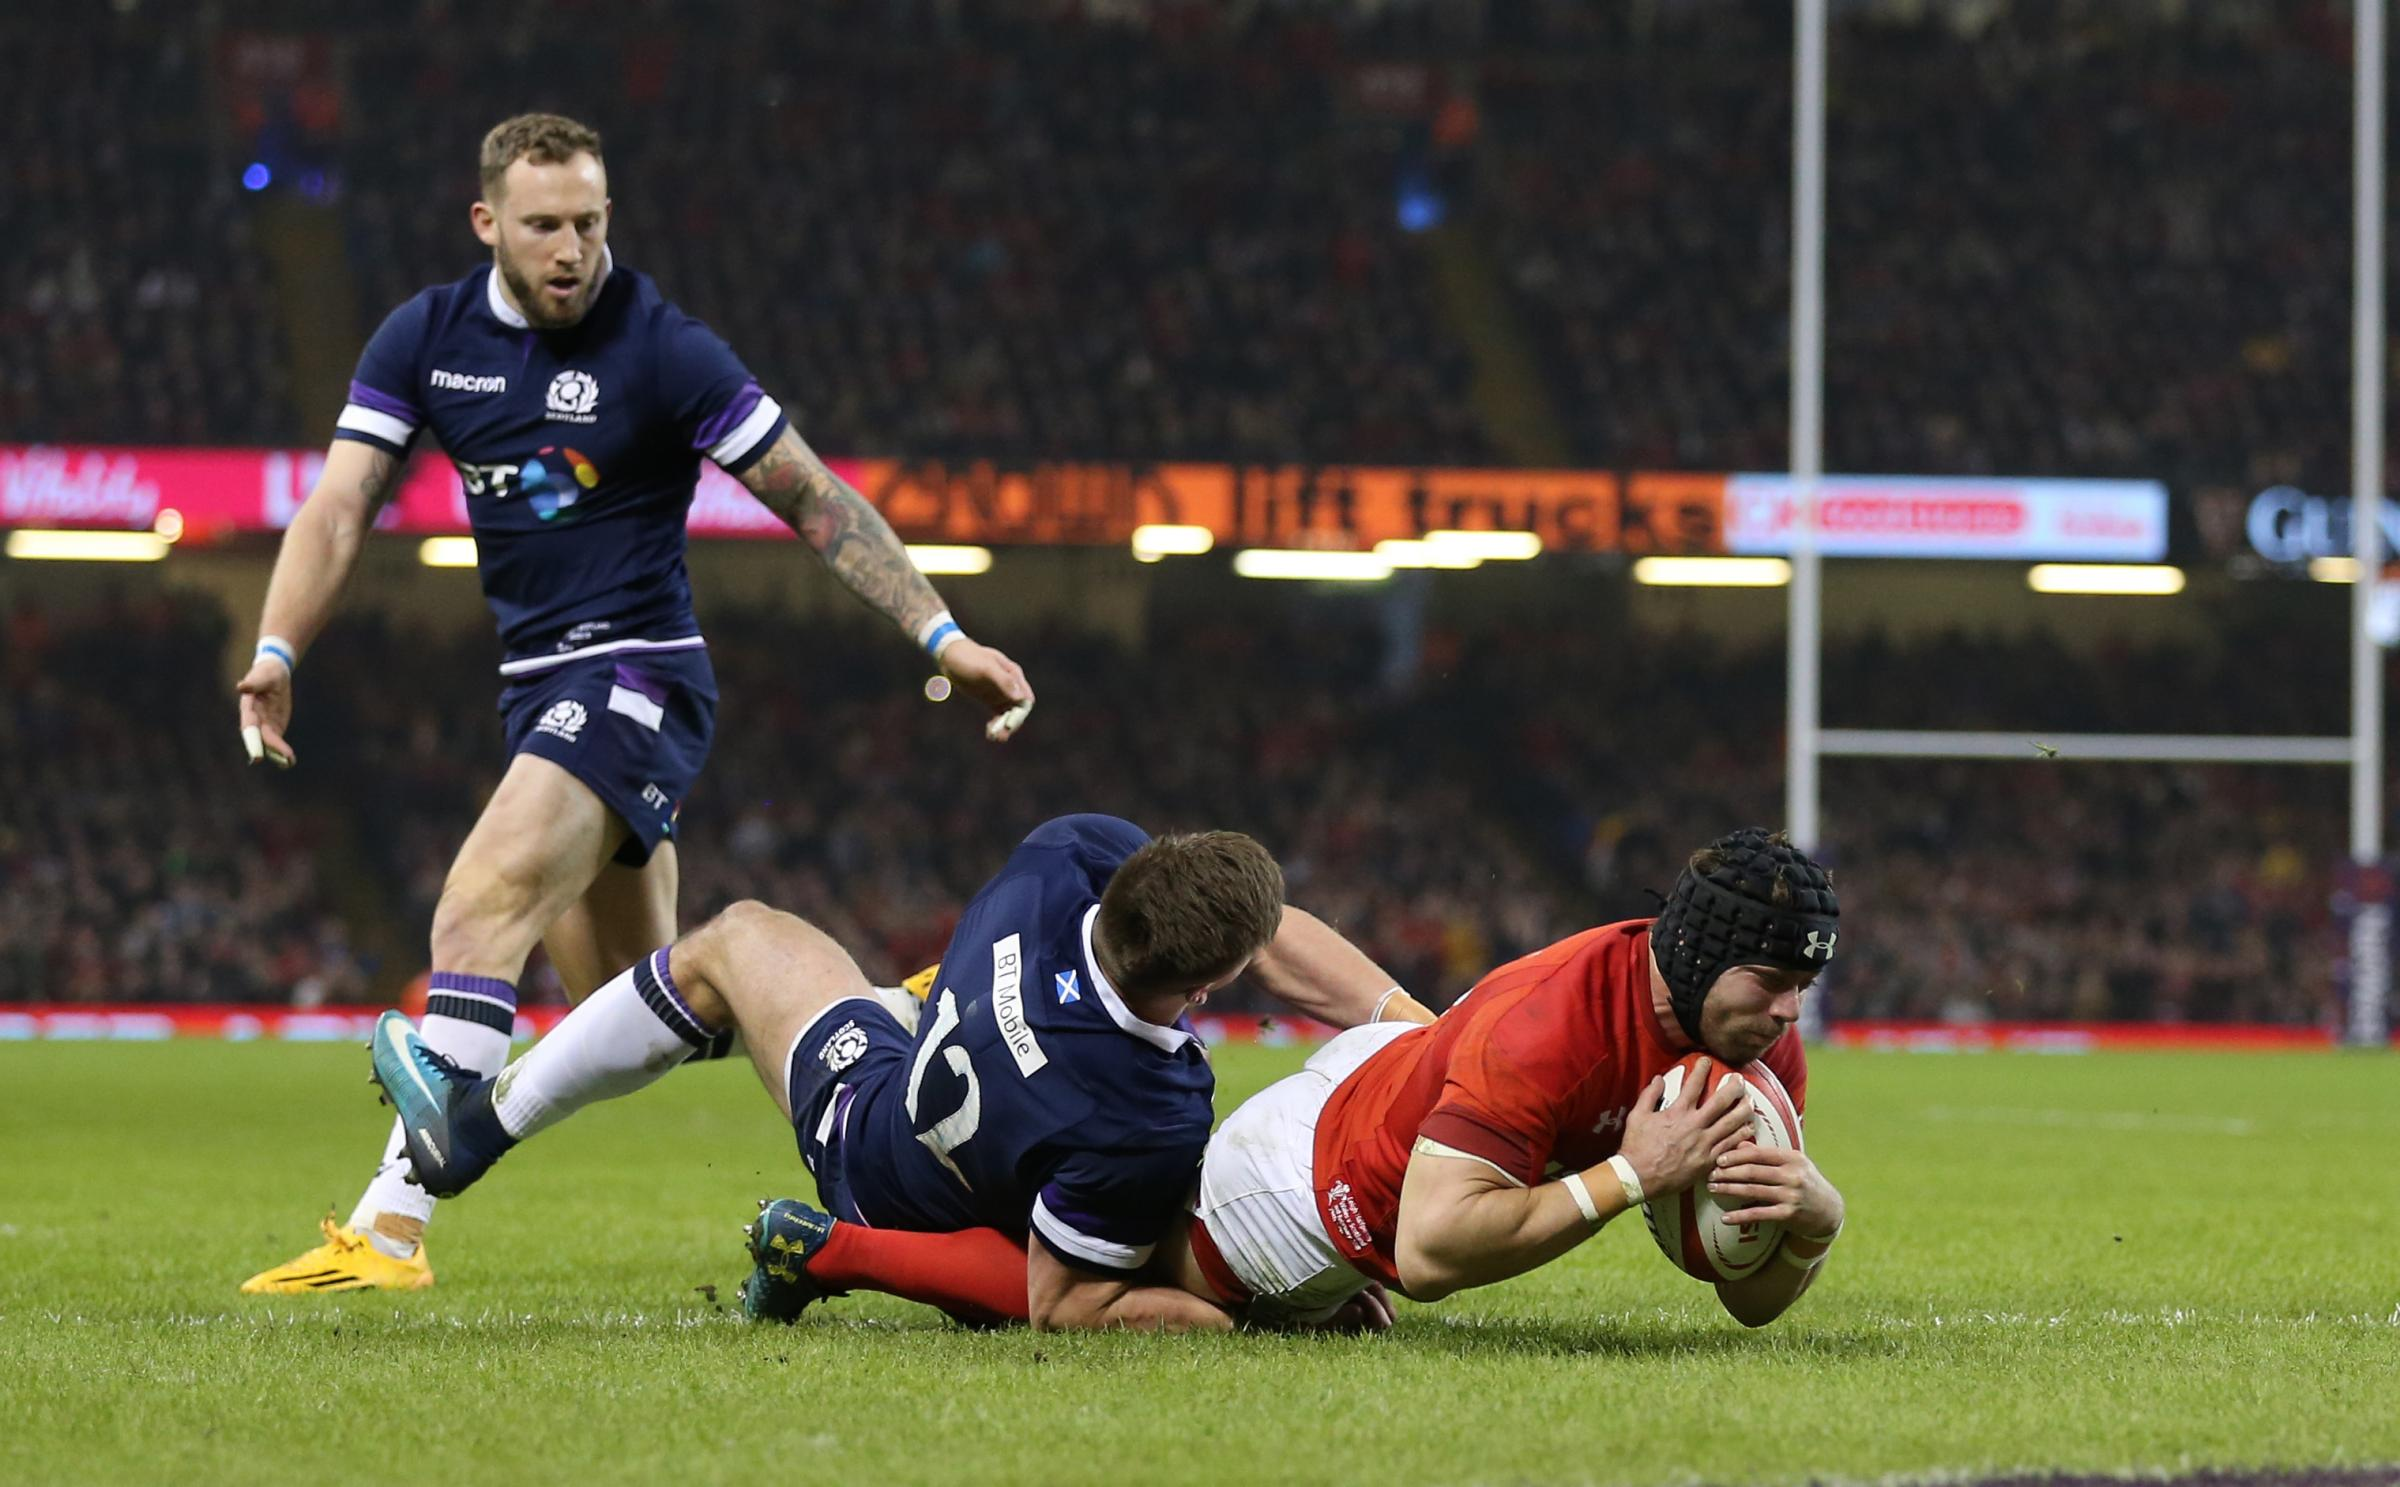 TRY TIME: Leigh Halfpenny dives over for Wales' second try